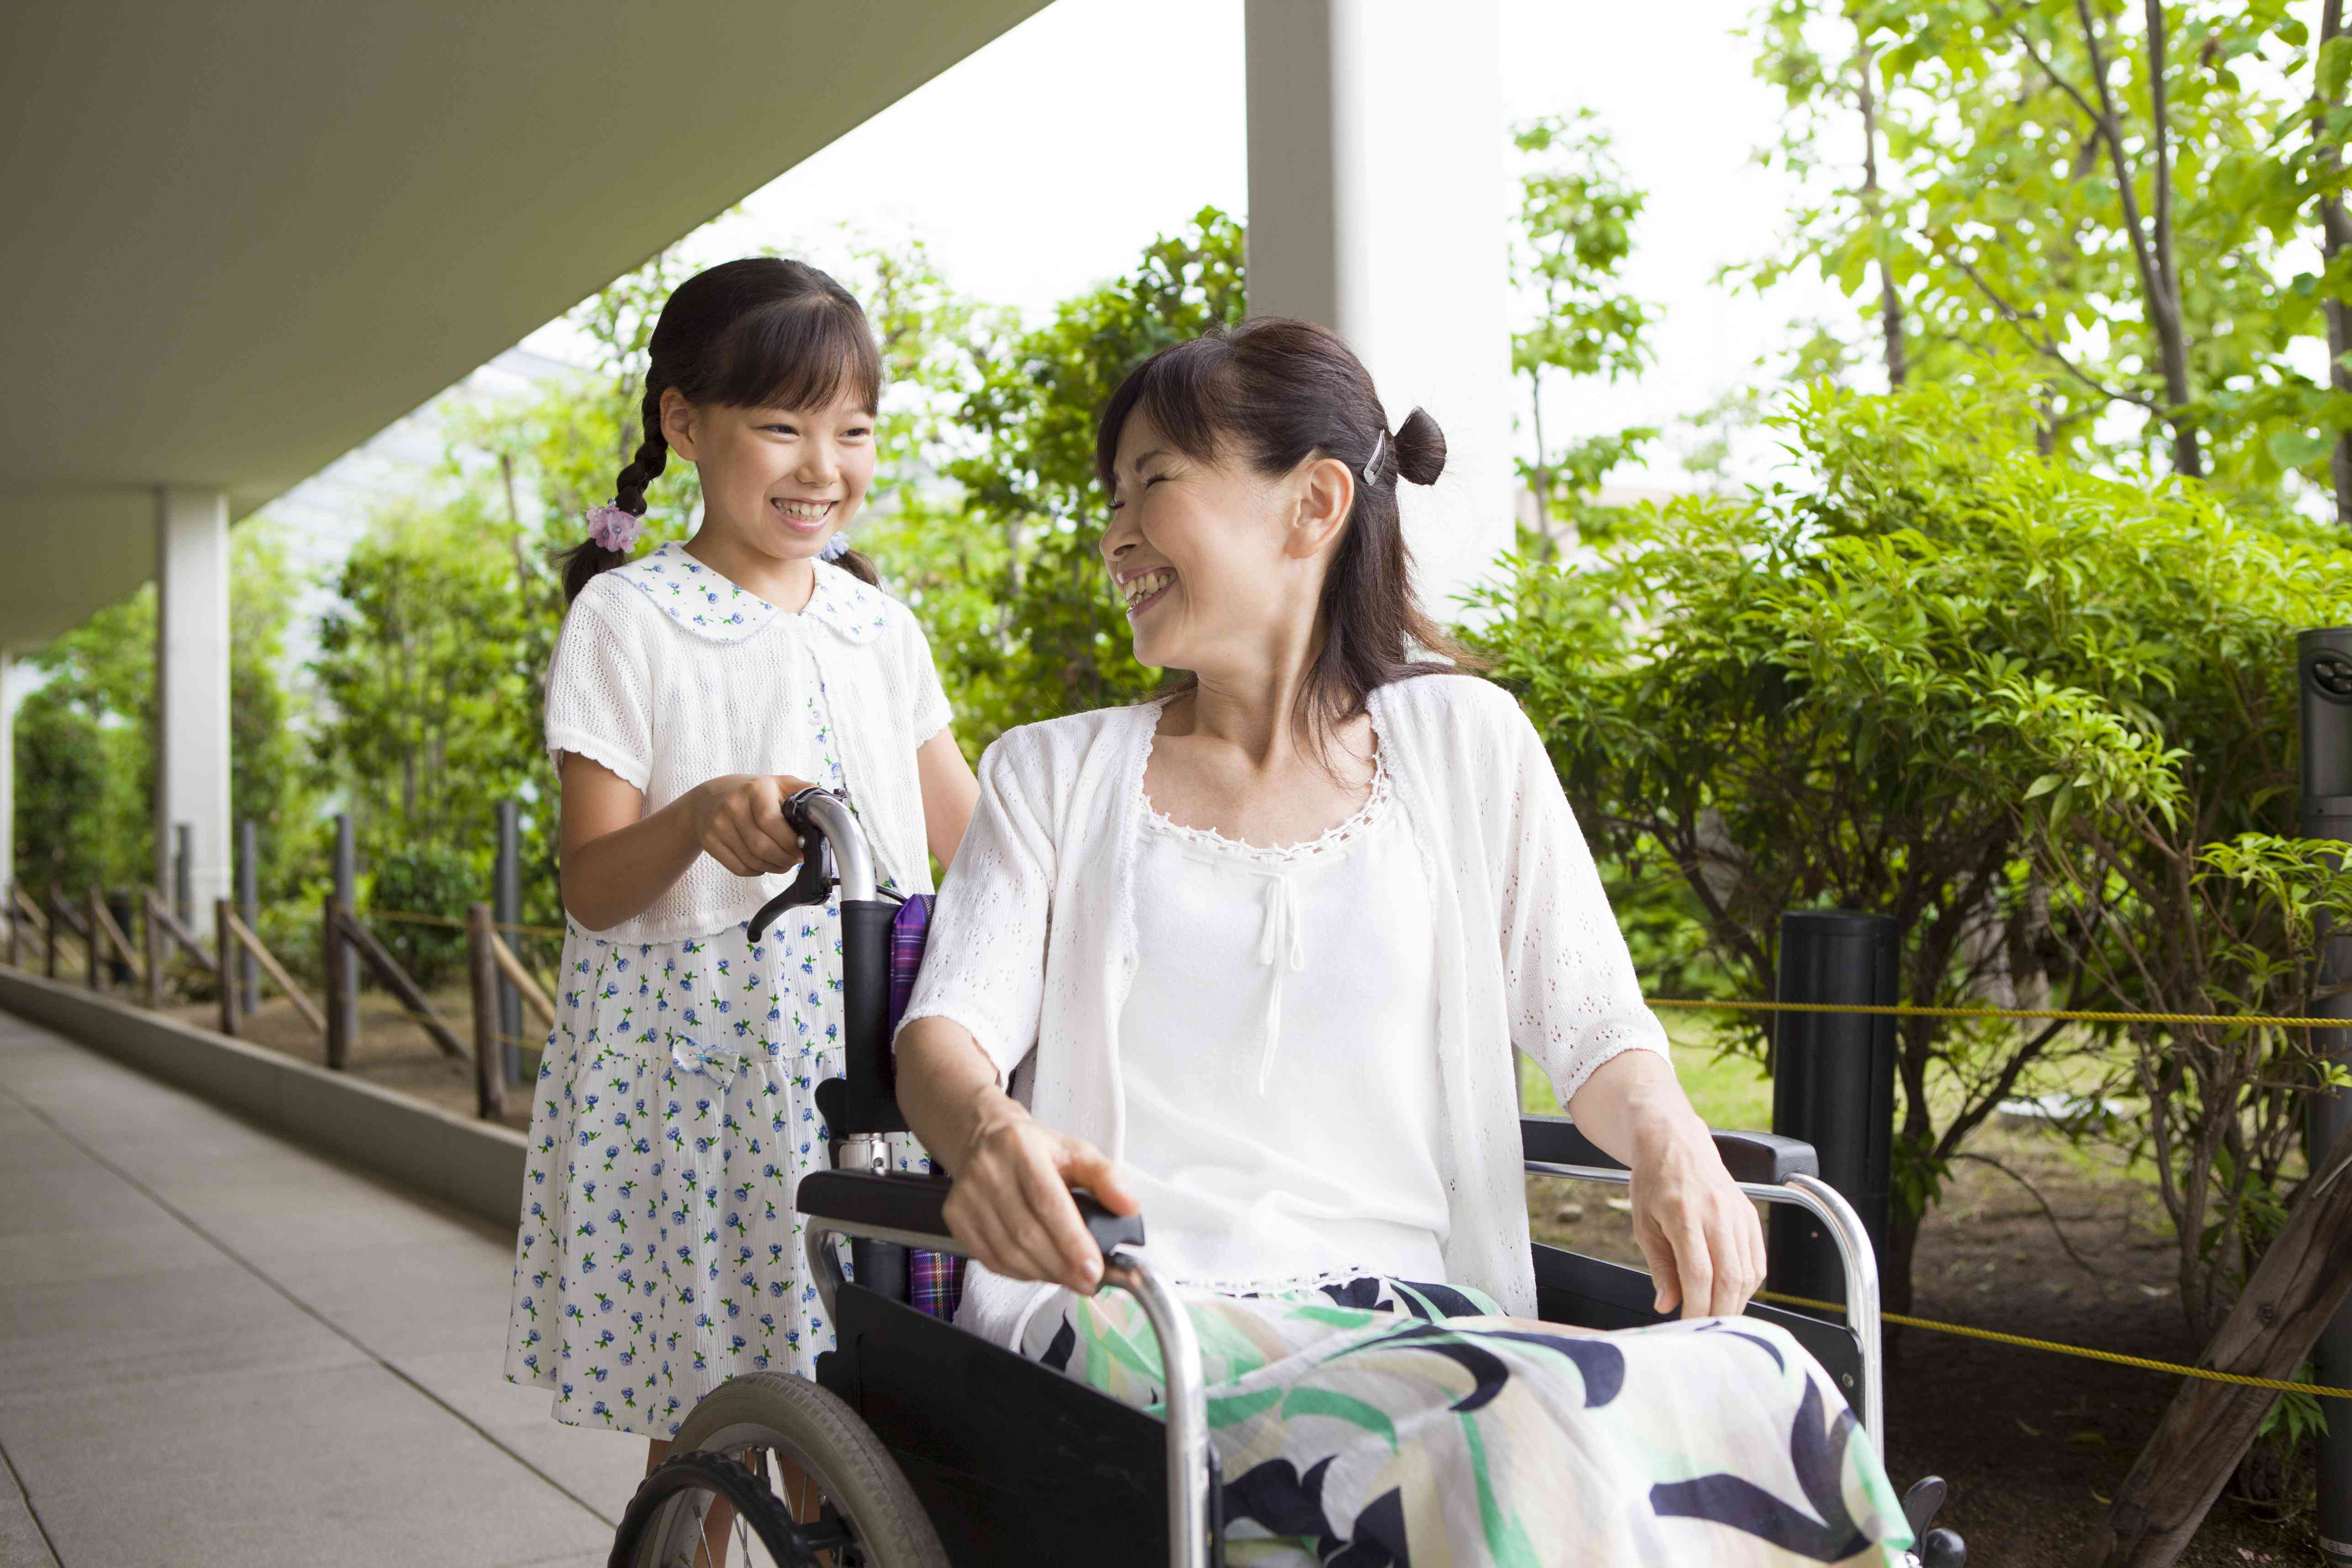 Child pushing adult in wheelchair